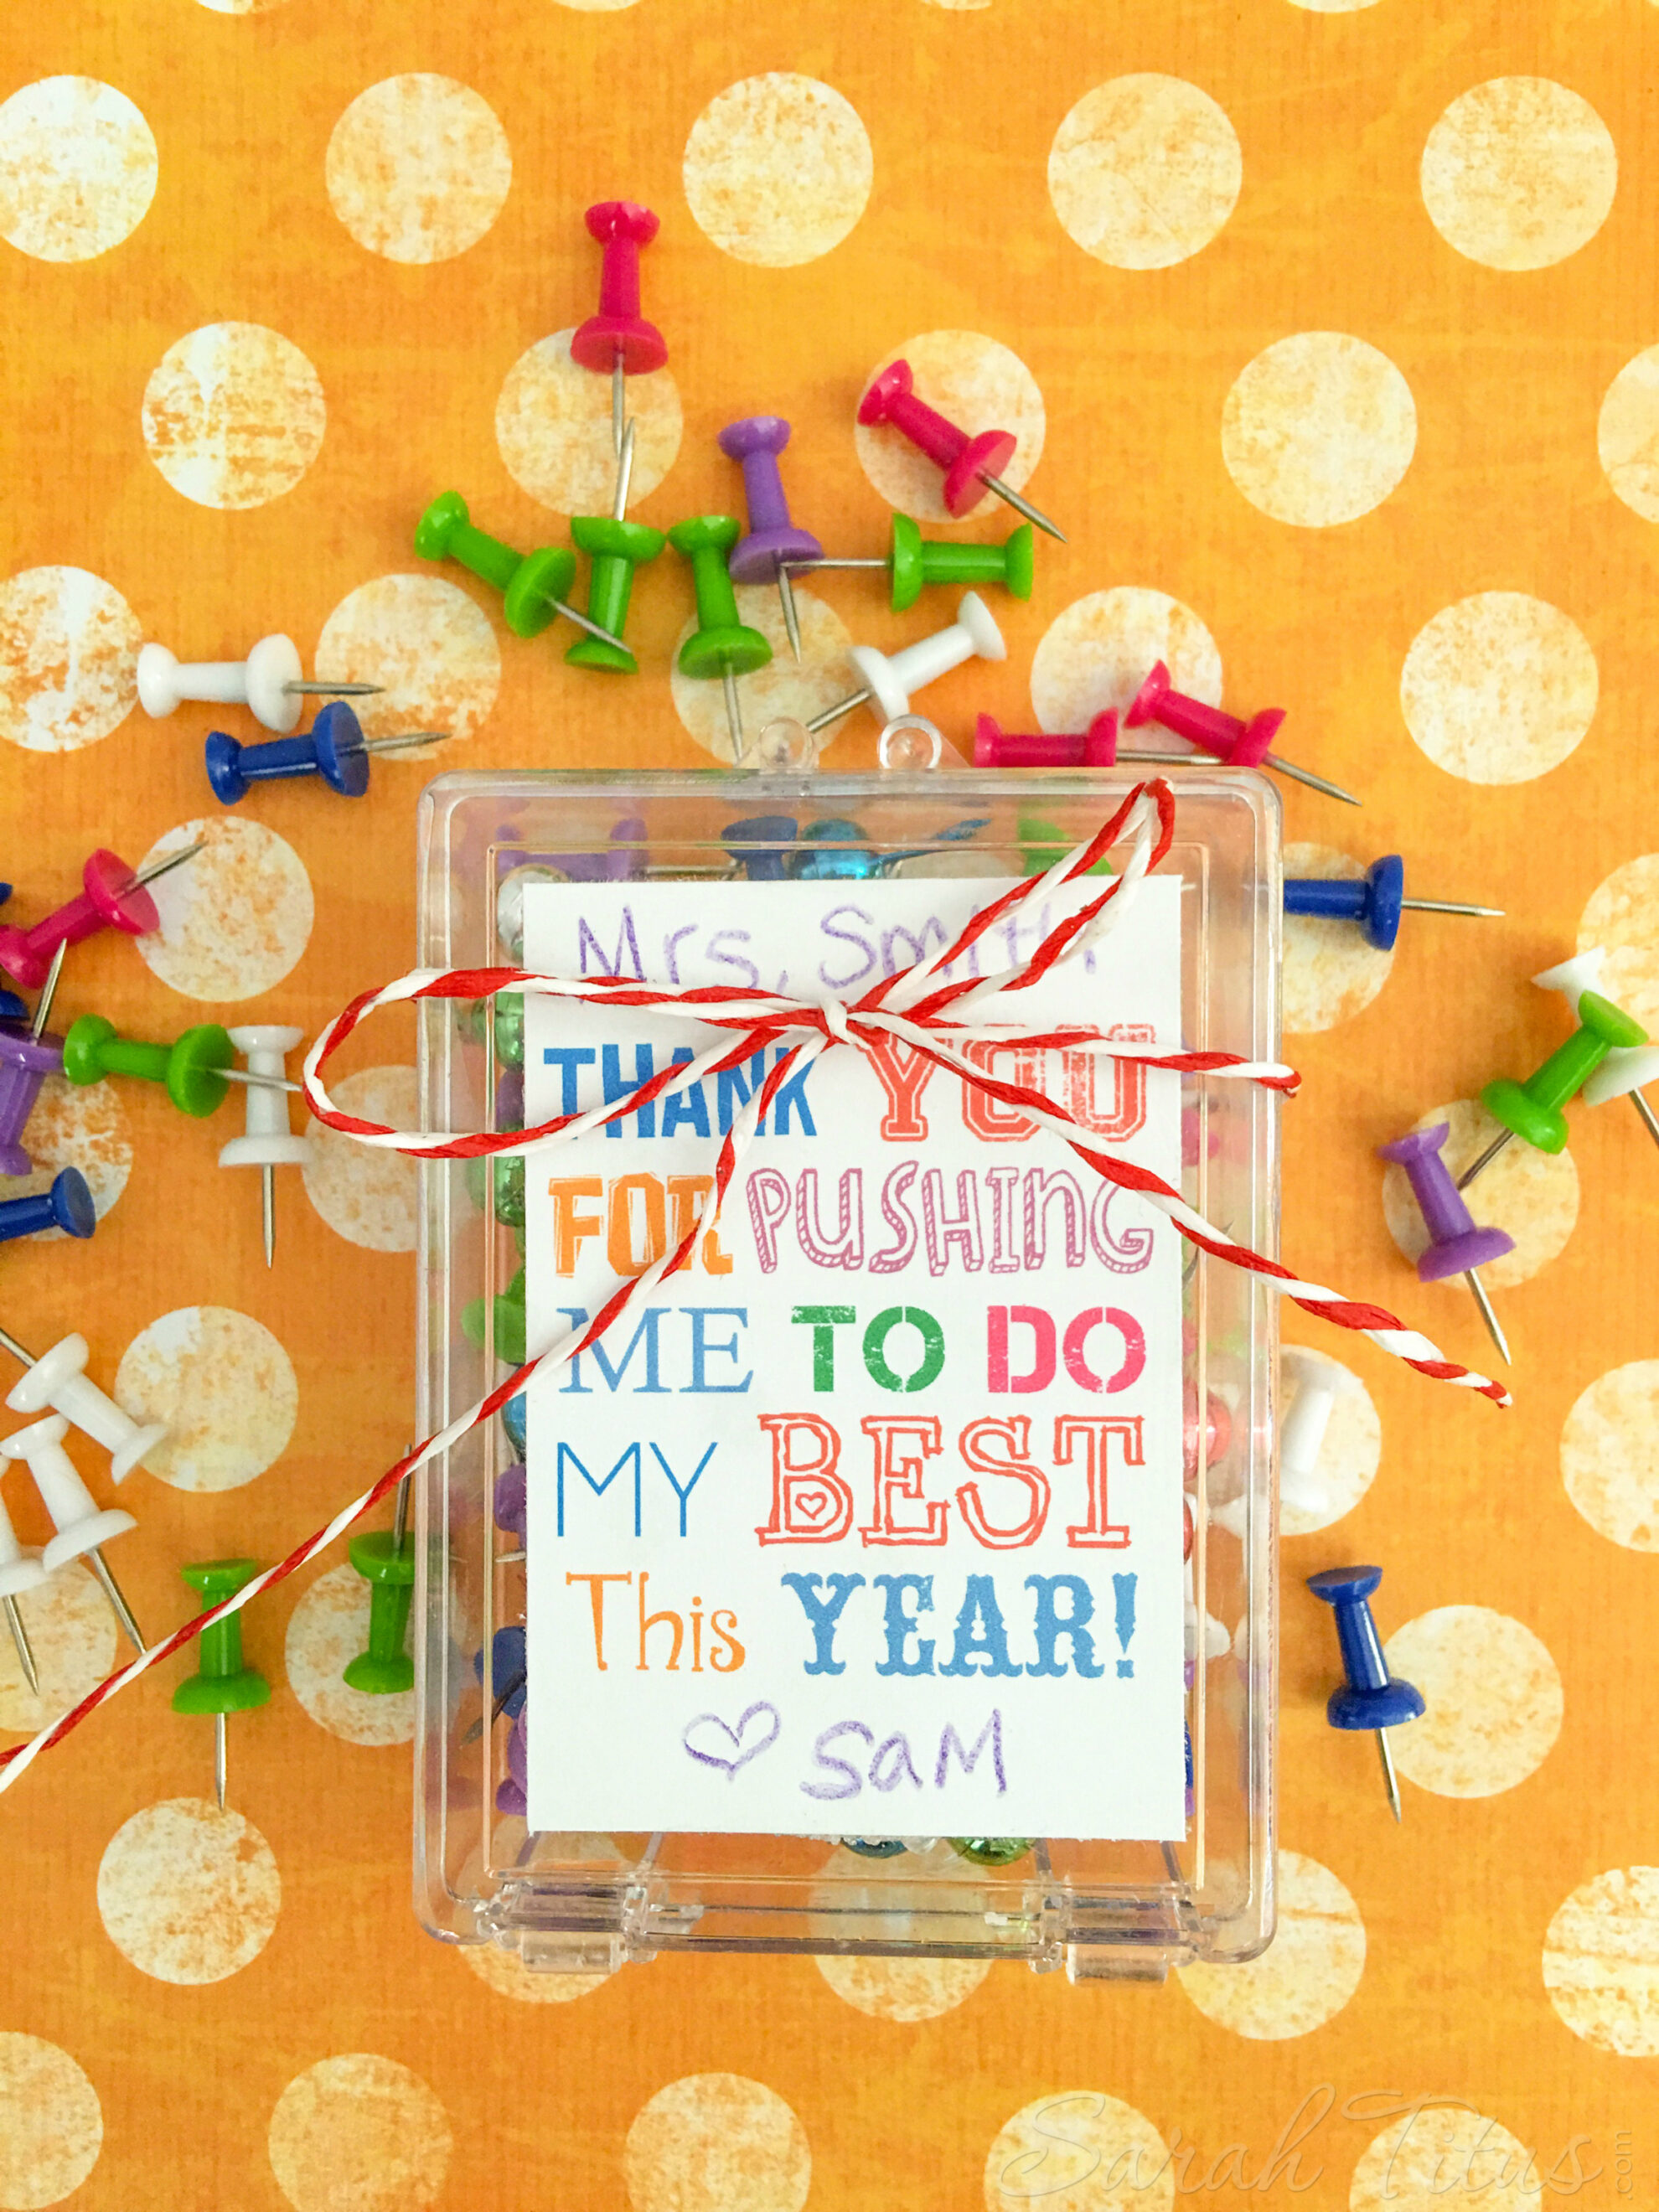 Show your appreciation with this cute & easy to make teacher appreciation gift idea free printable - thank you for pushing me to do my best this year!